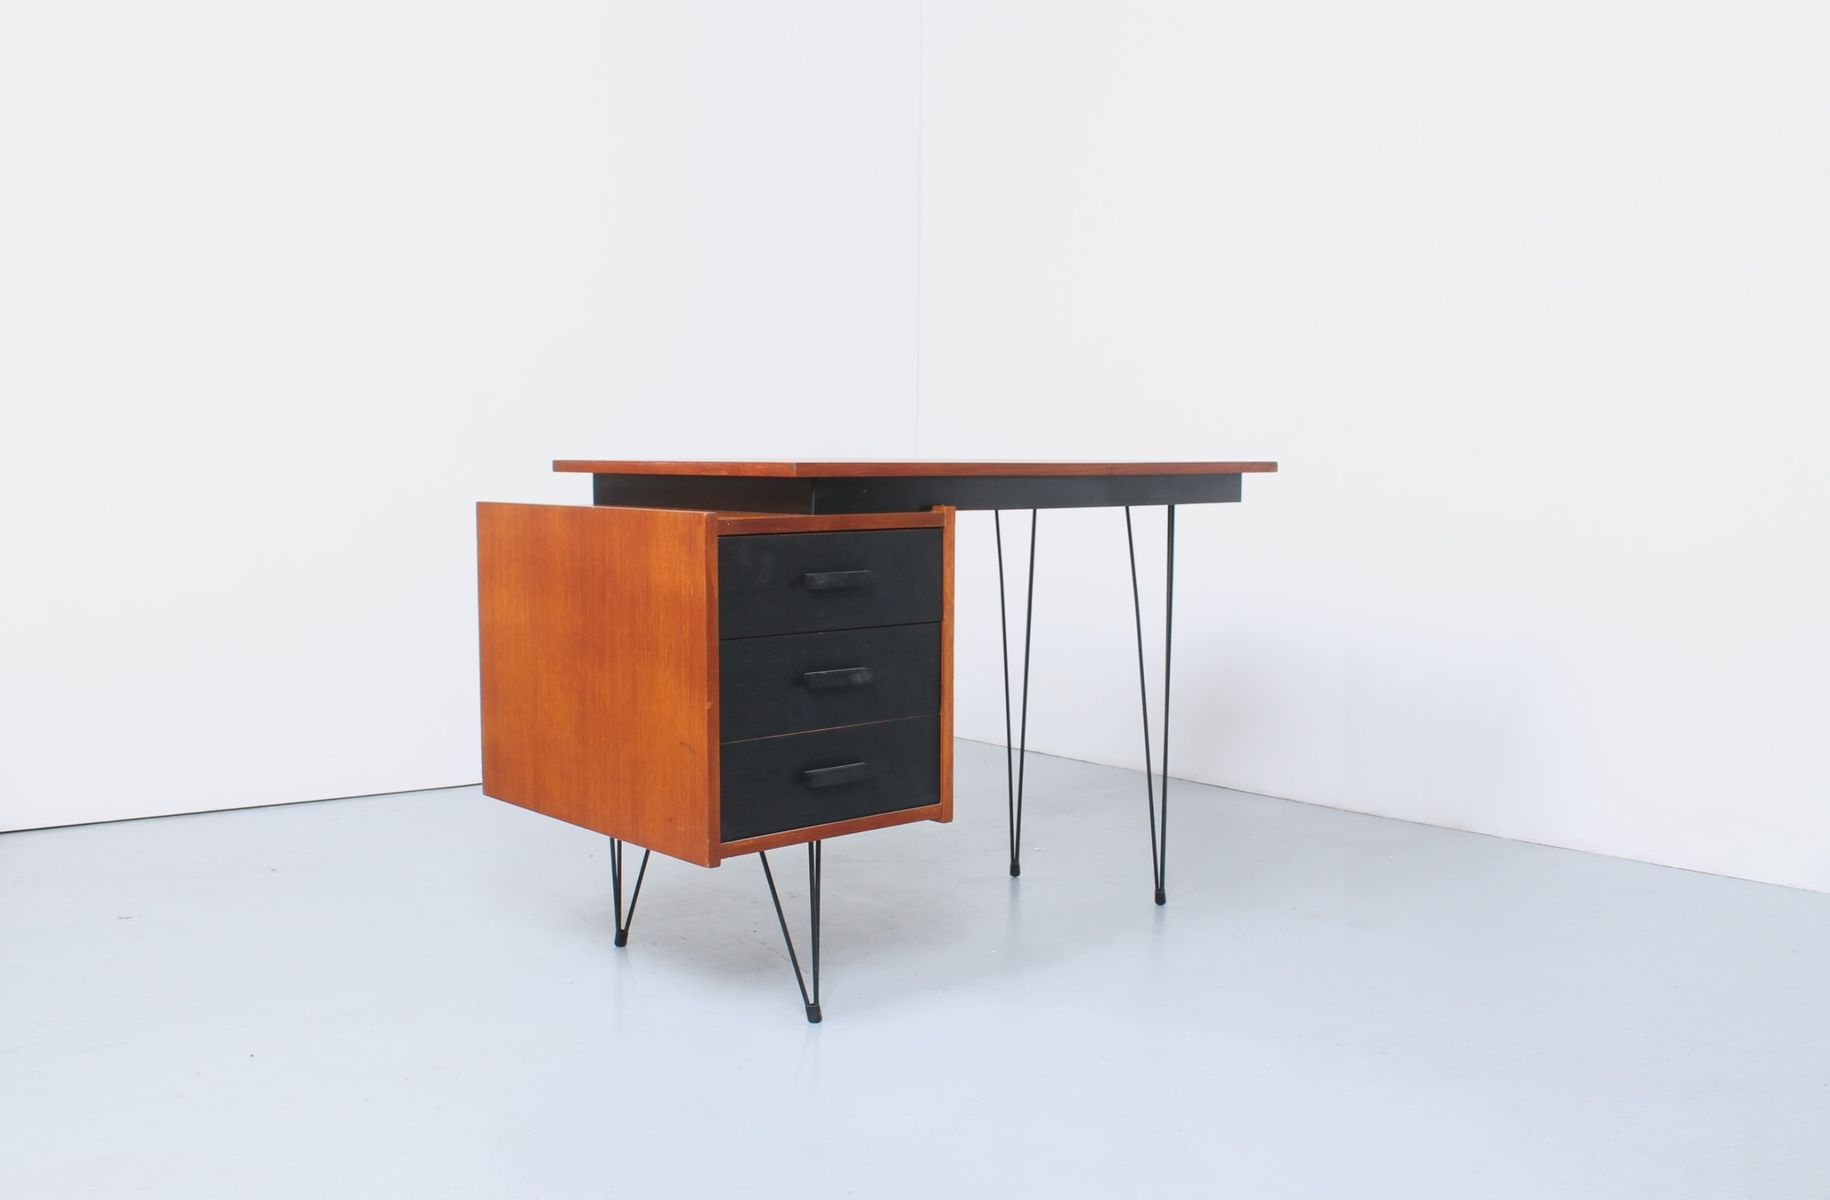 petit bureau en placage de teck noir 1950s en vente sur pamono. Black Bedroom Furniture Sets. Home Design Ideas